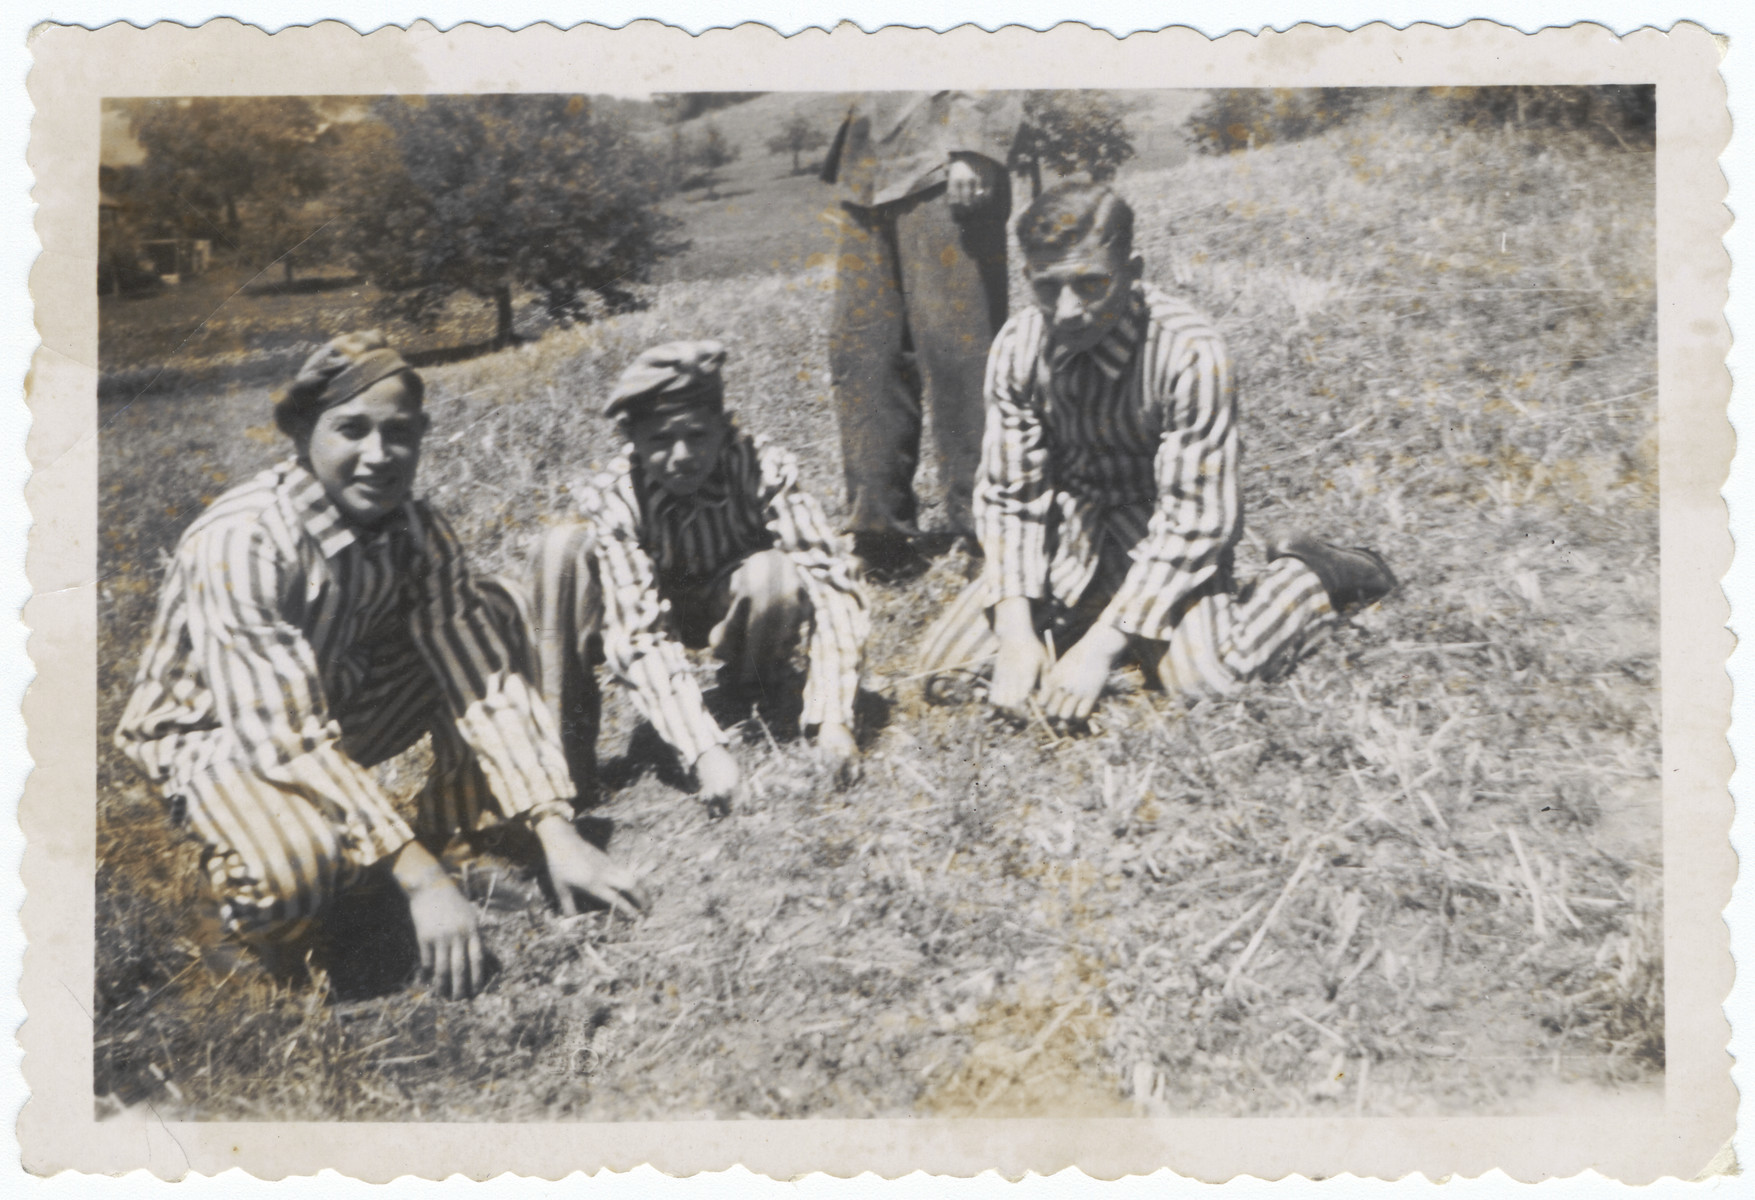 Three Buchenwald survivors pose on the grass in their uniforms after liberation.